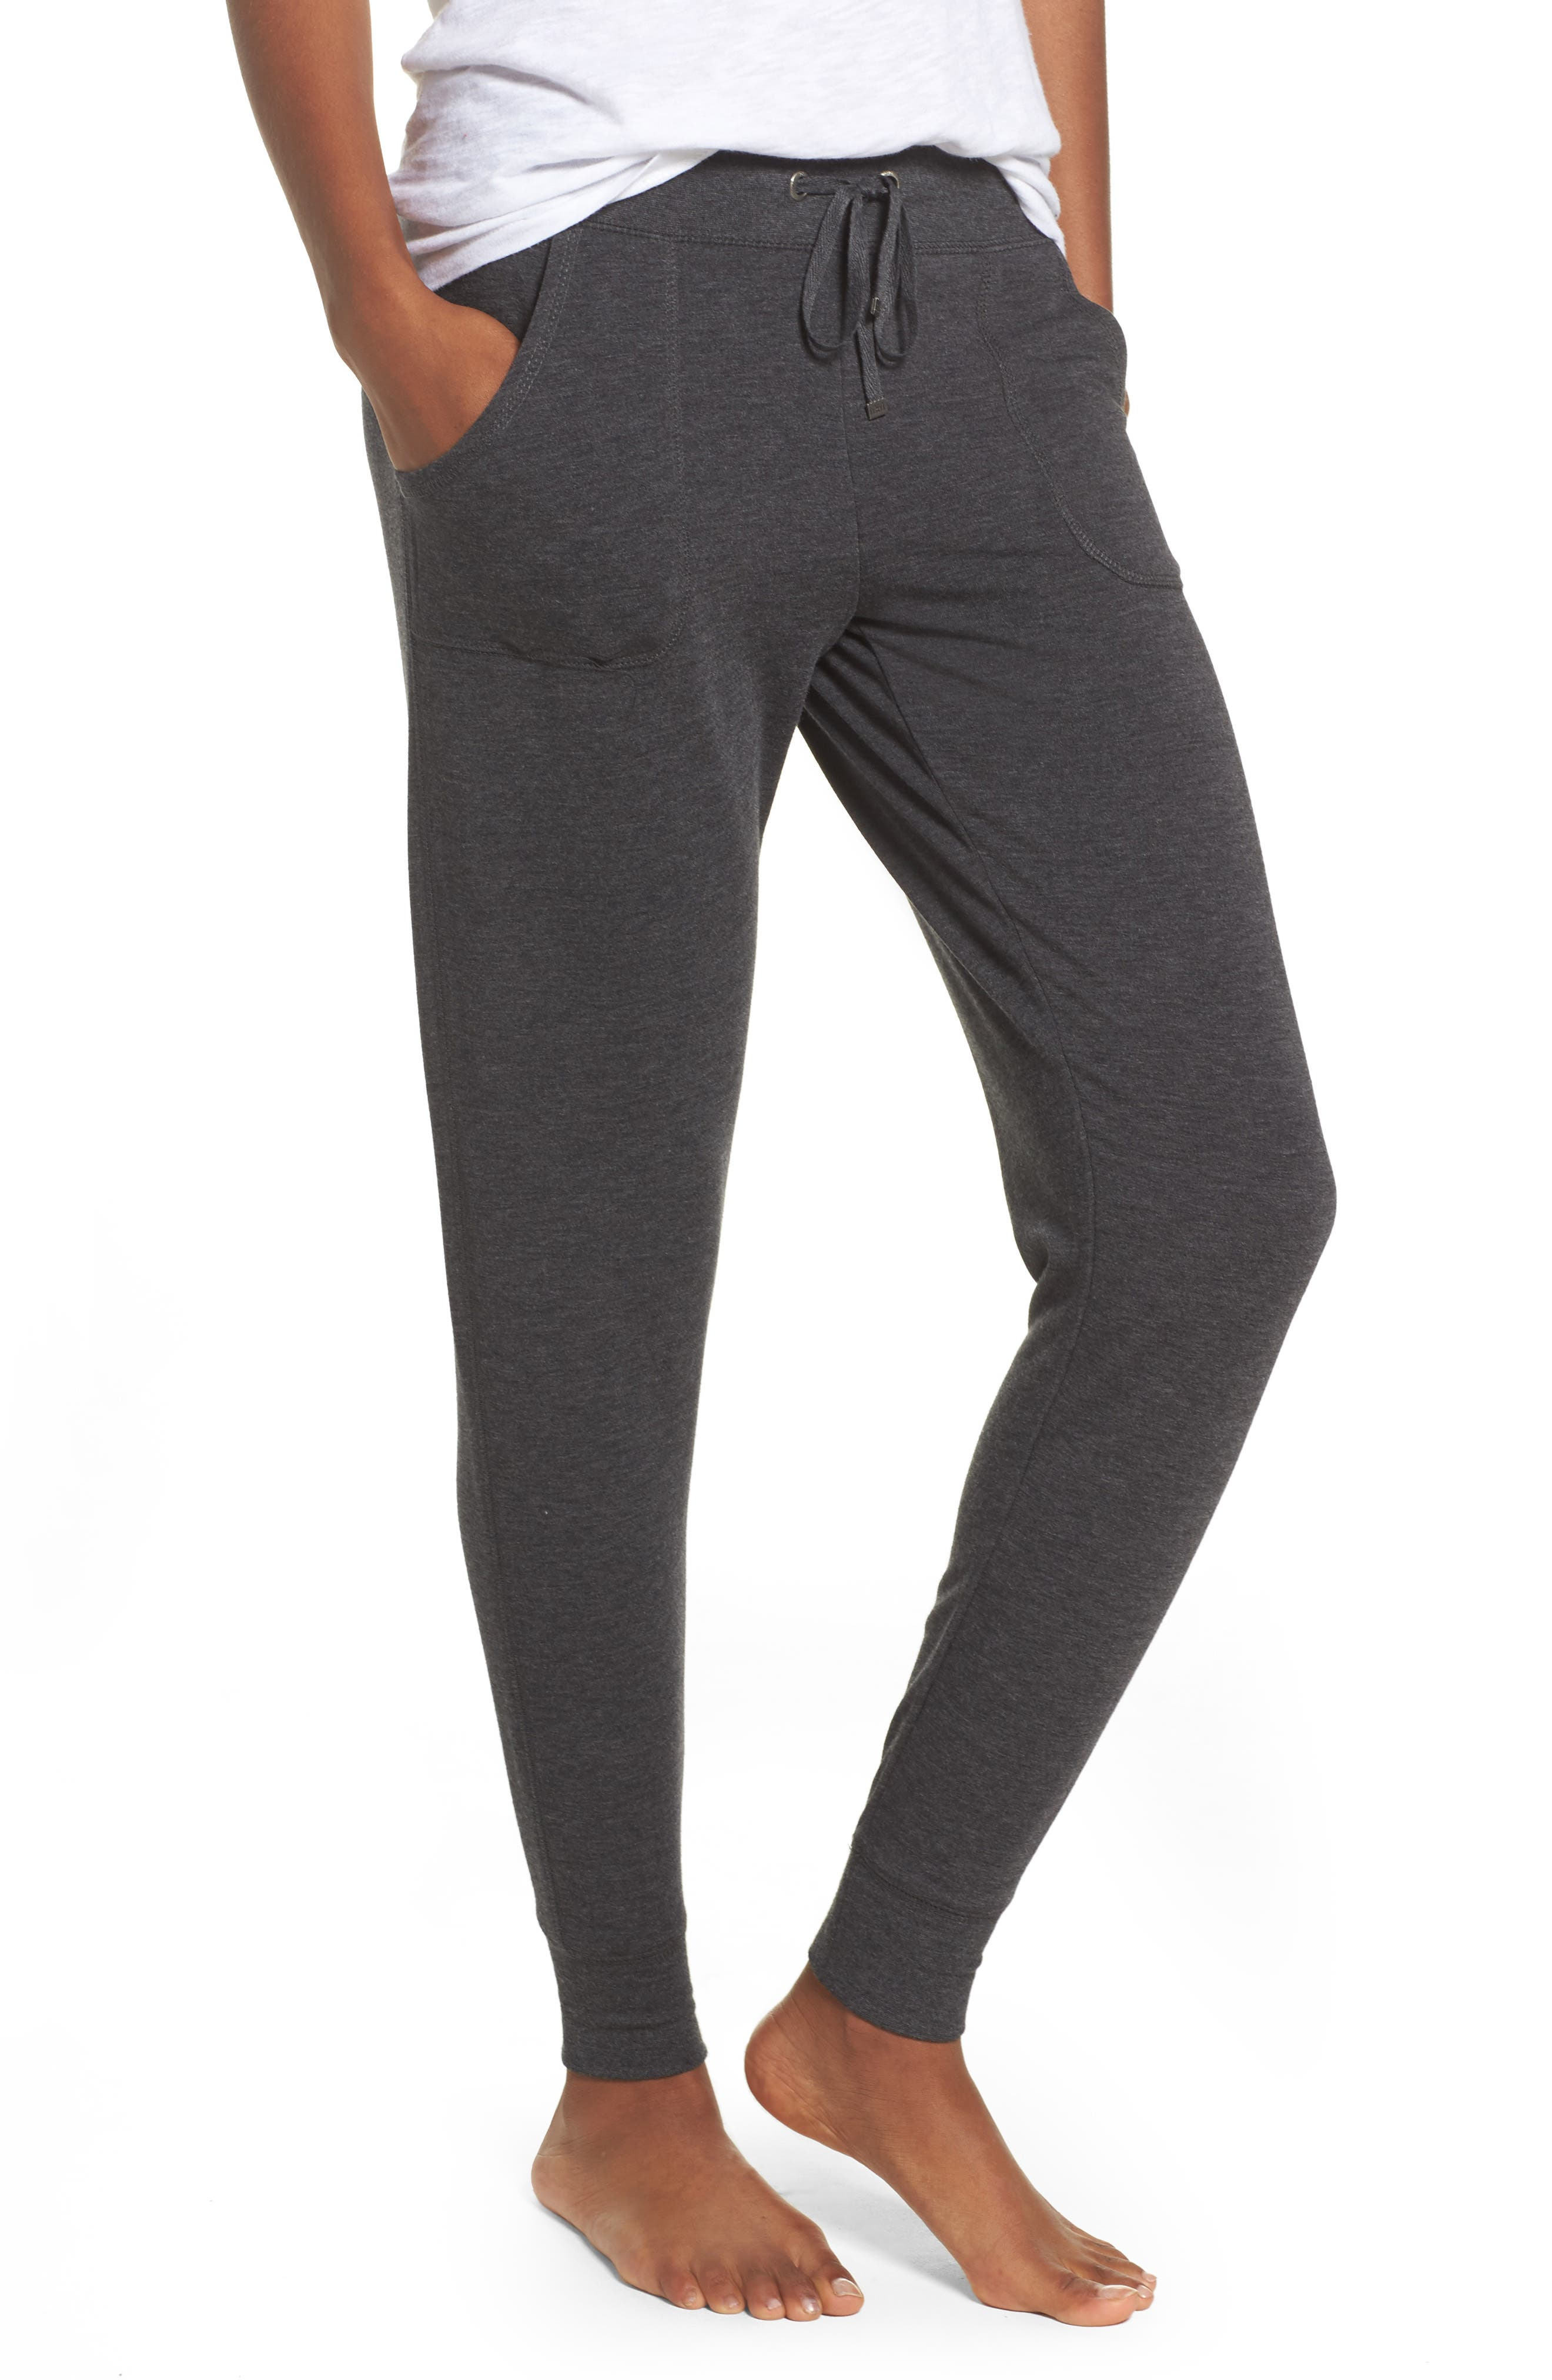 All About It Lounge Pants,                             Main thumbnail 1, color,                             Grey Wolf Heather